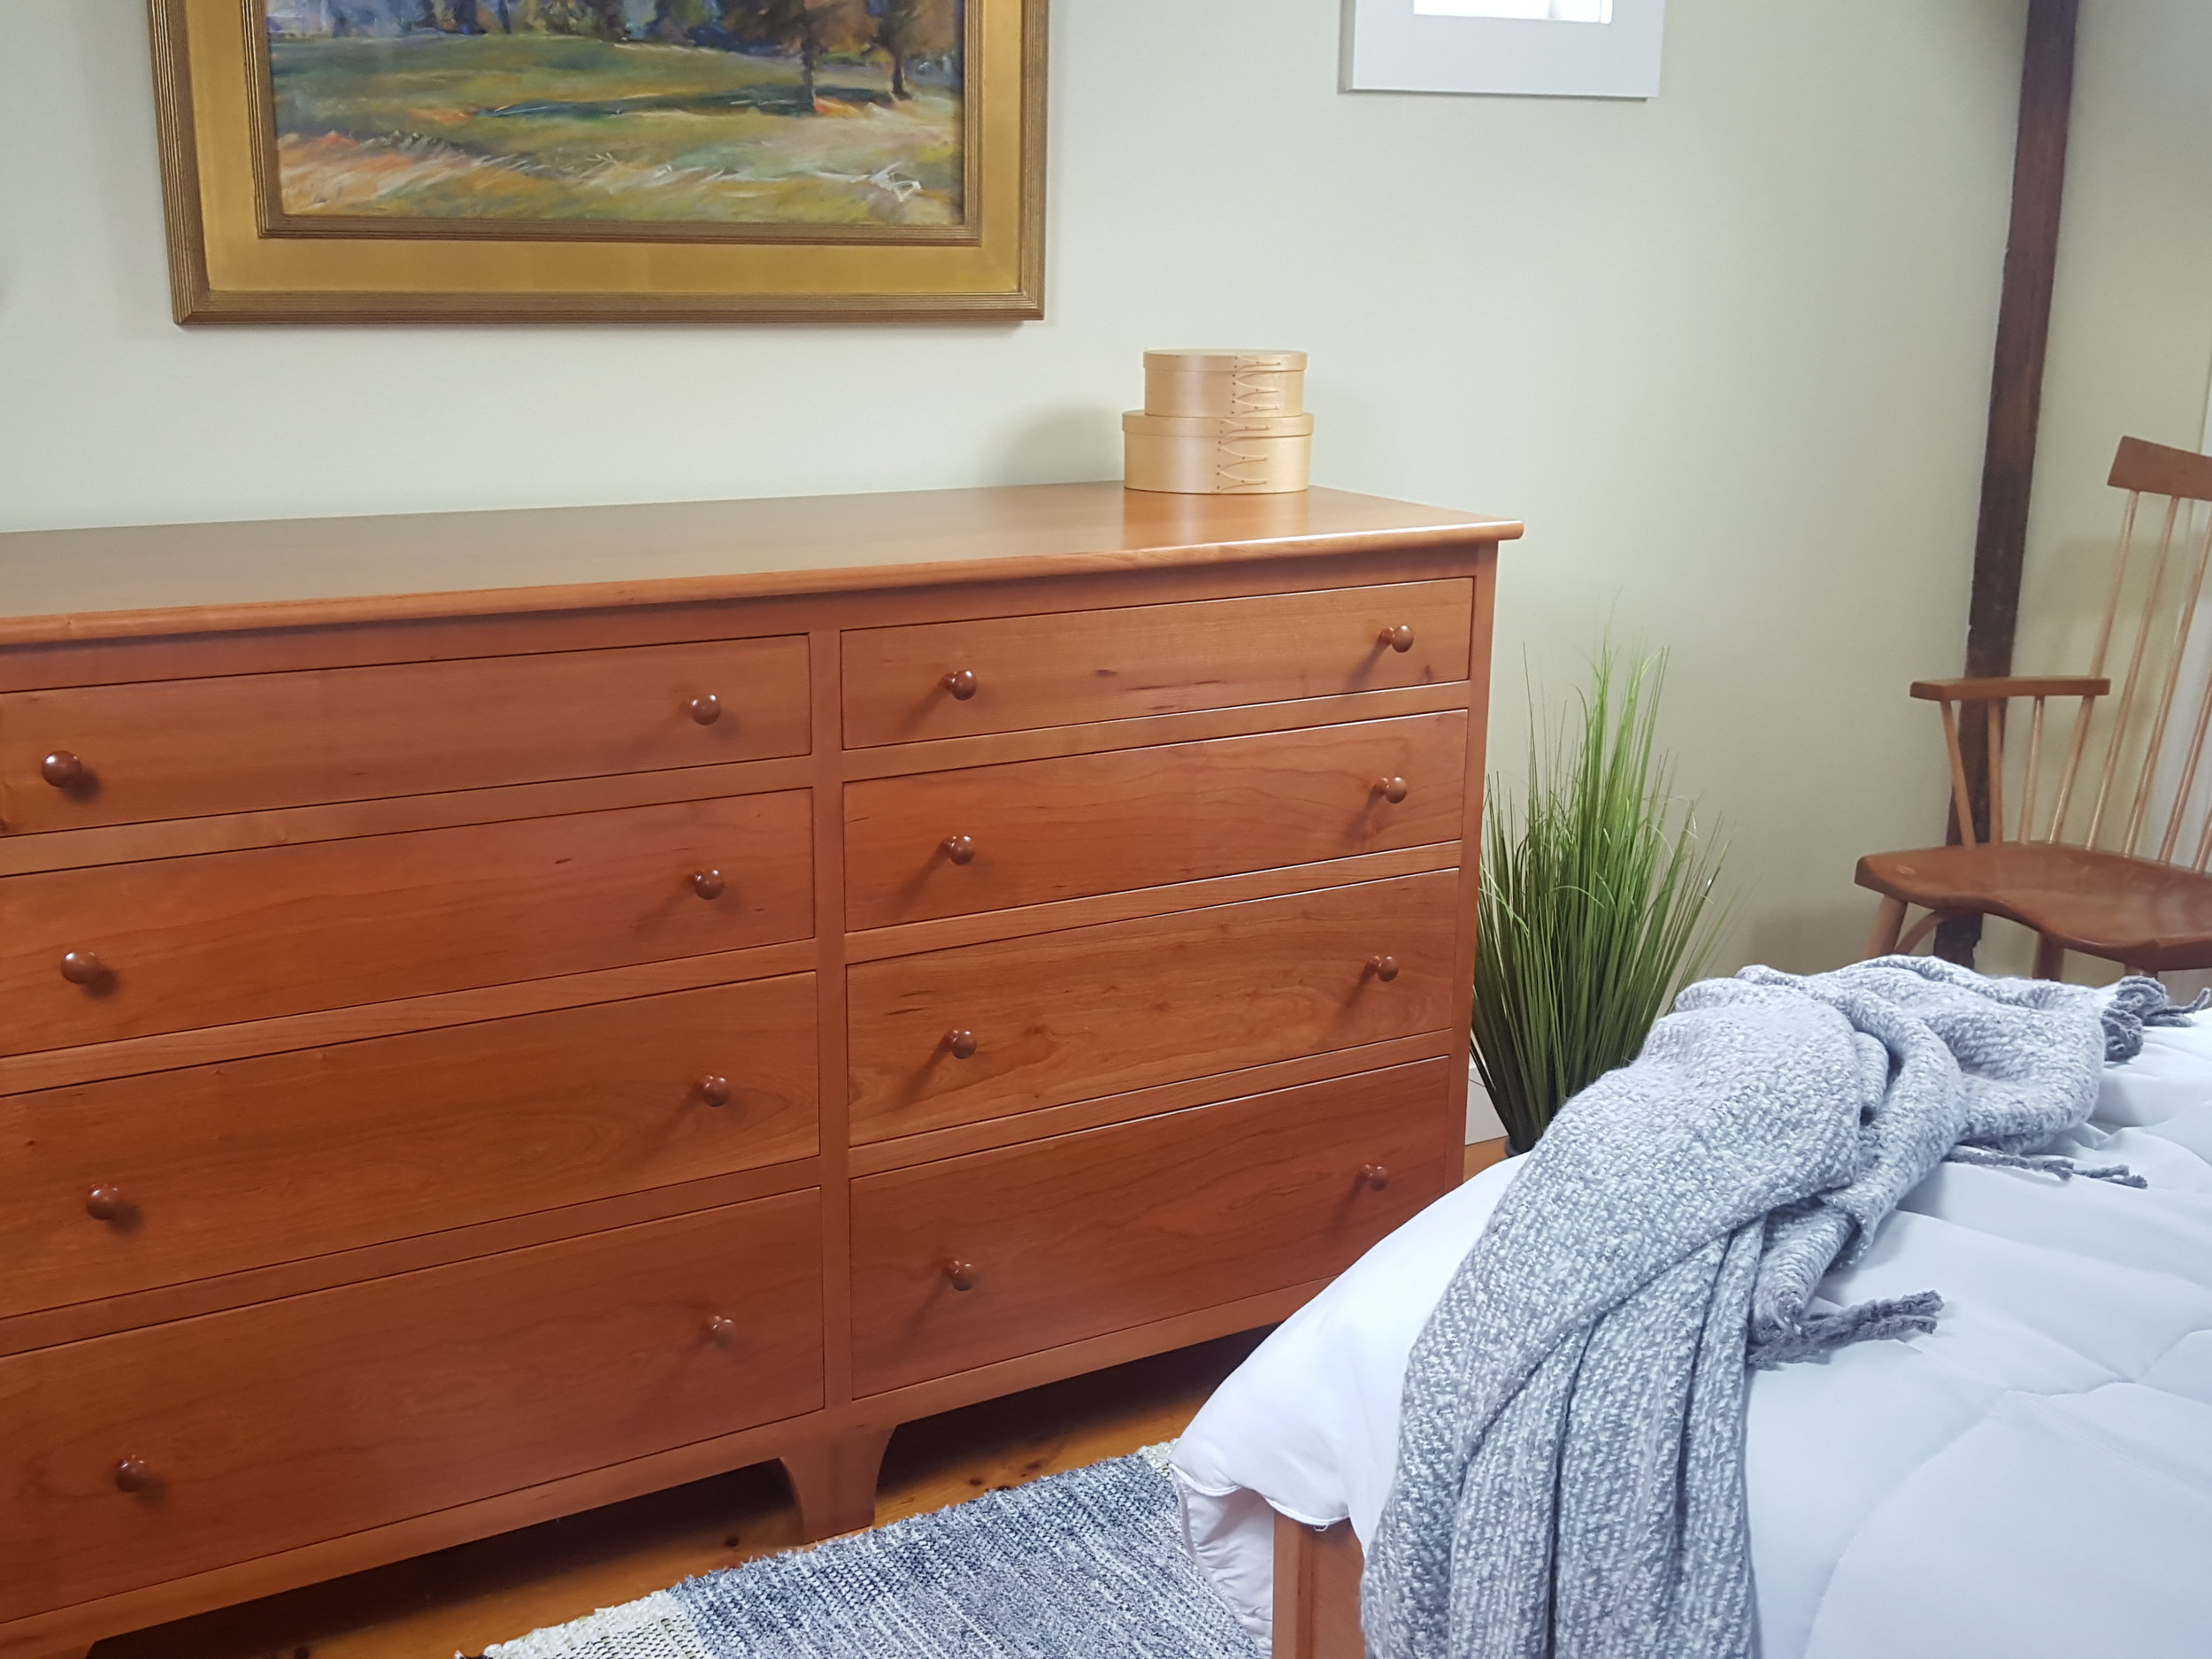 chests-horizontal-drawer-chest-dressers